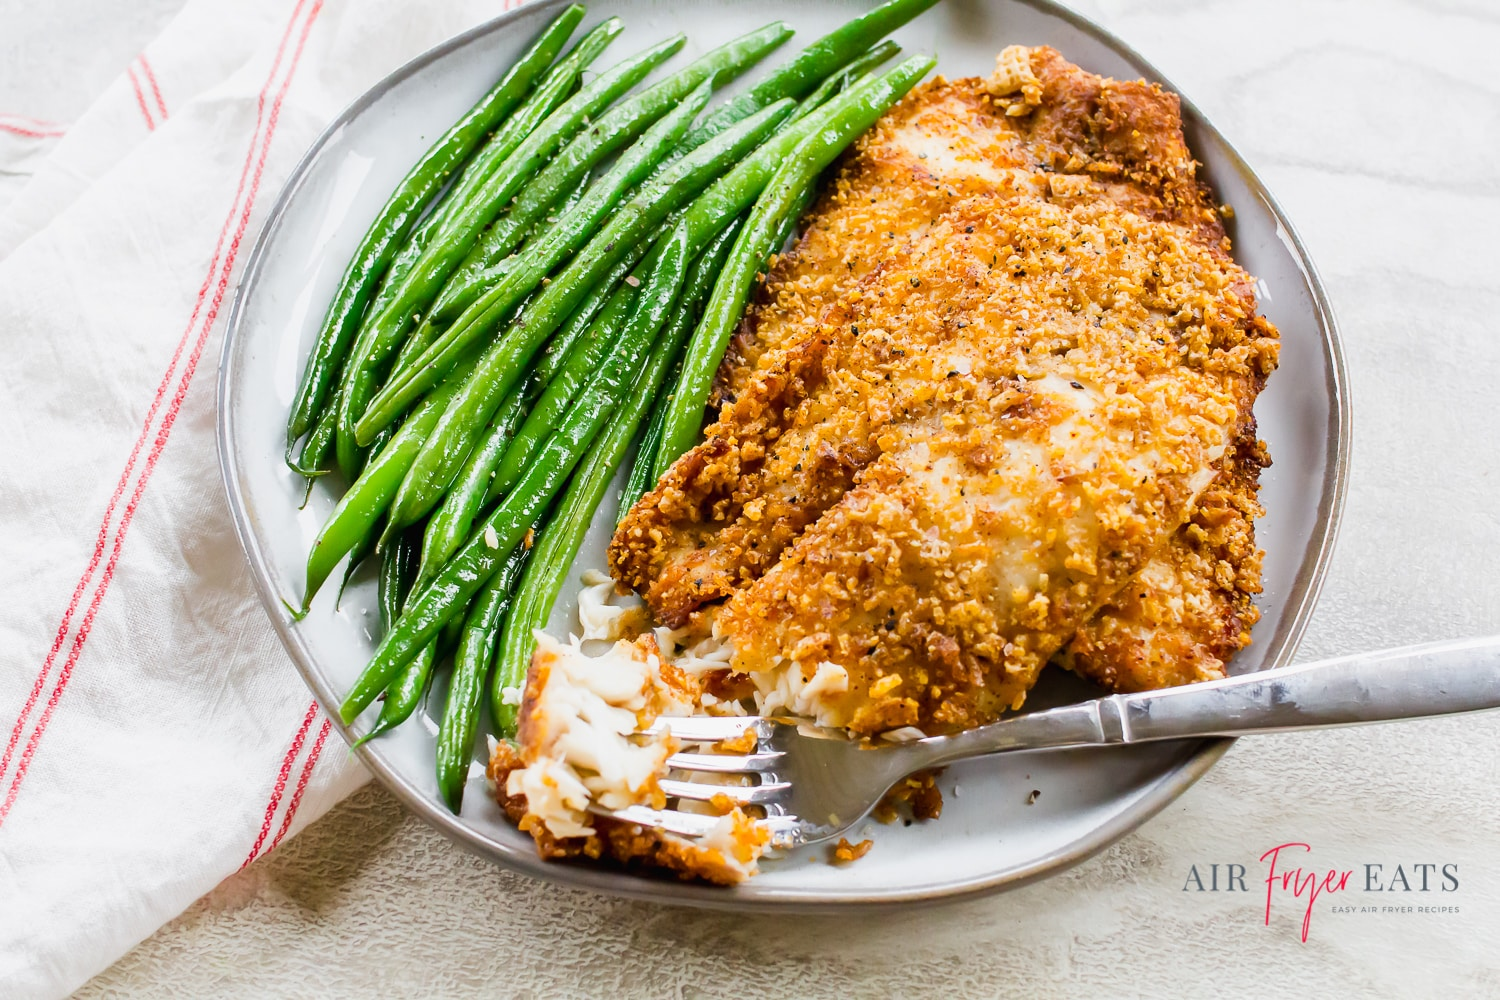 Flaky air fryer tilapia with green beans on a round gray plate with a fork